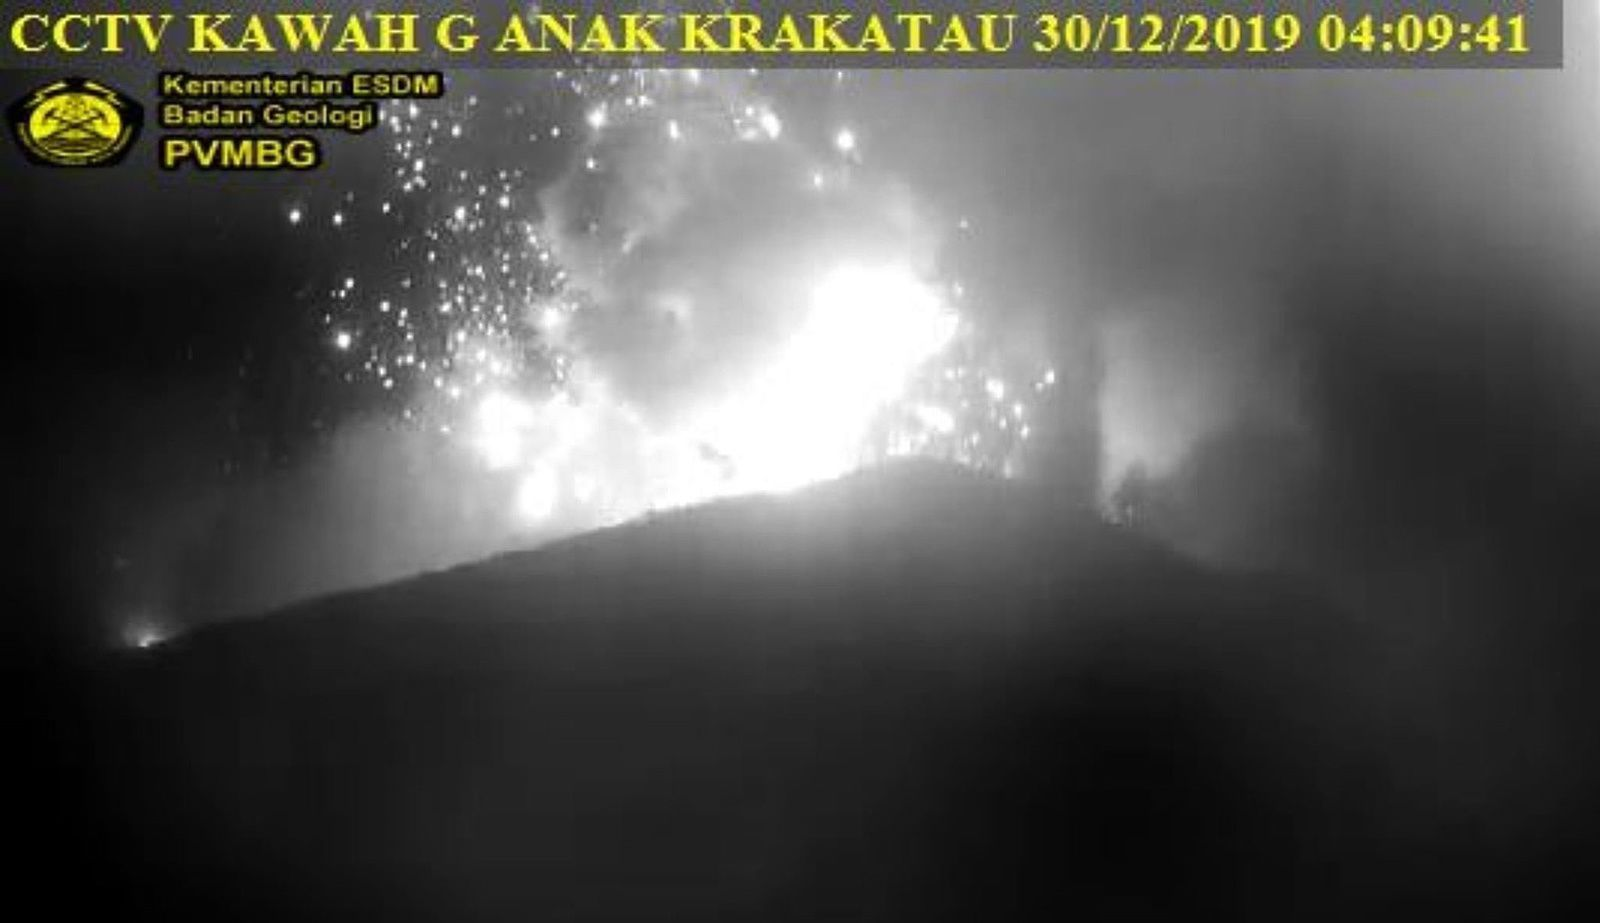 Krakatau  - expulsion de tephra incandescents le 30.12.2019 / 04h09 - webcam PVMBG